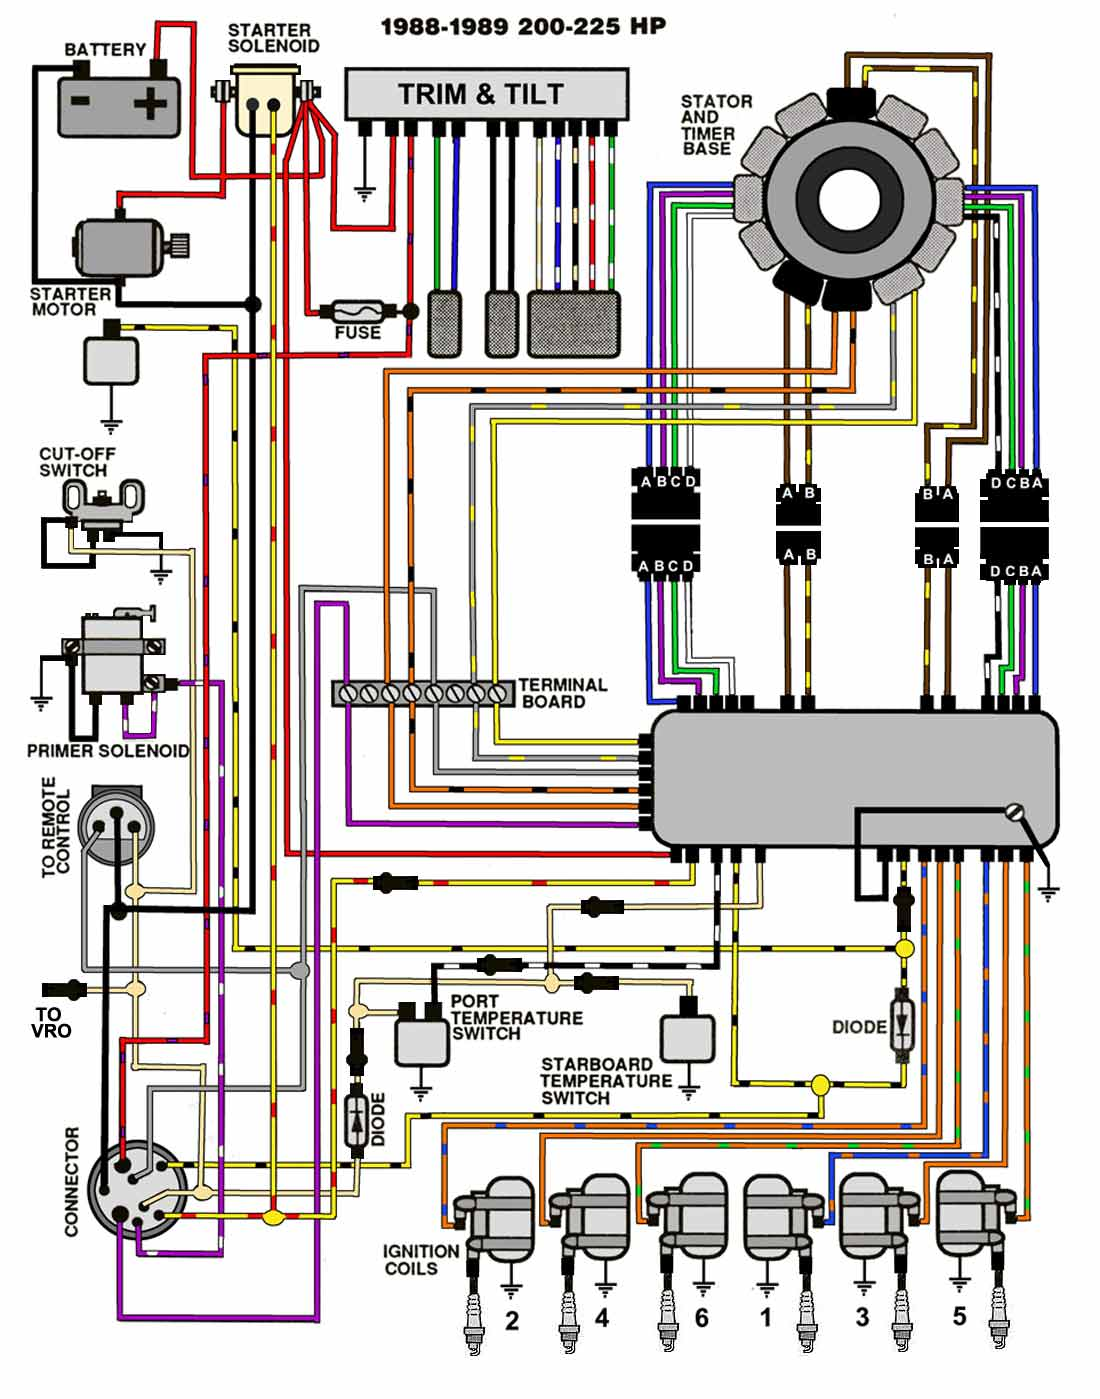 1988_89_200_225 honda outboard wiring diagram mercruiser wiring diagram \u2022 free honda v twin 20 hp wiring diagram at edmiracle.co